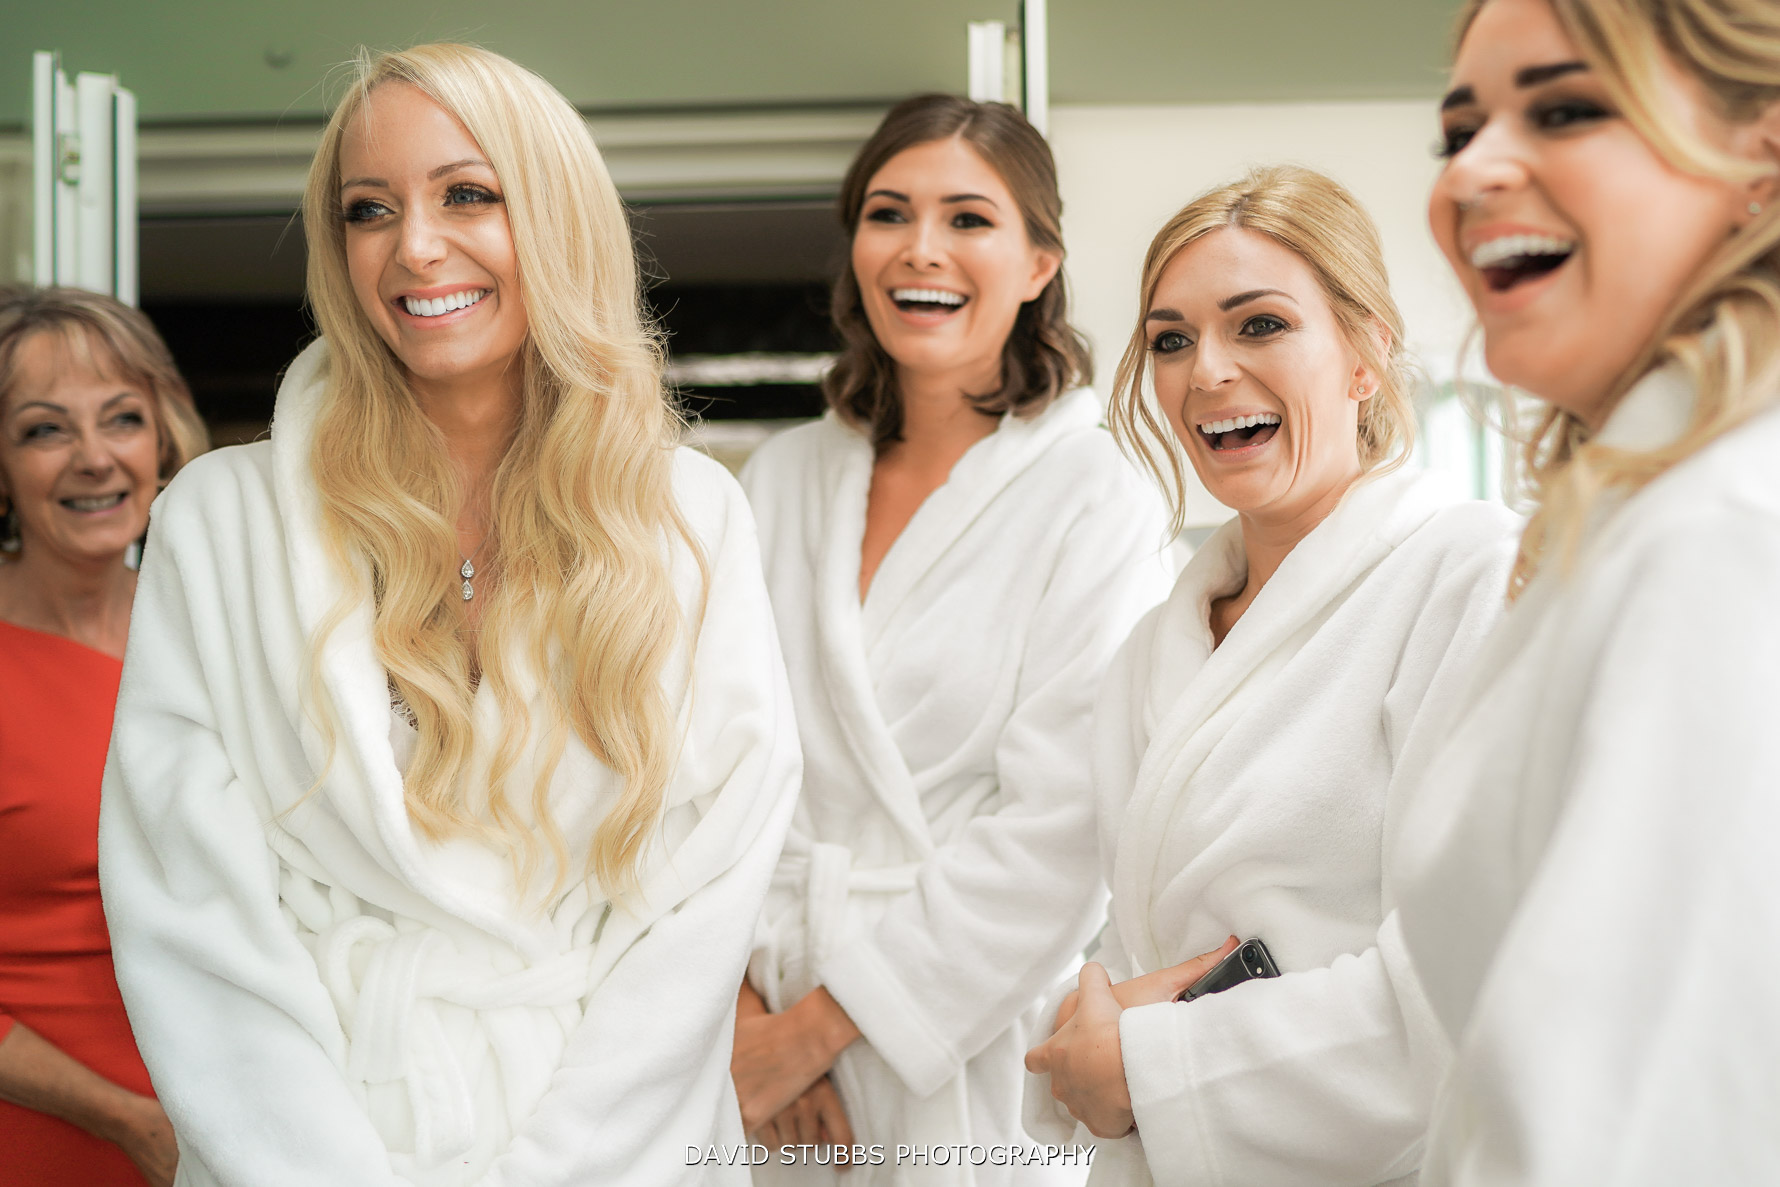 bridesmaids laughing and celebrating the wedding